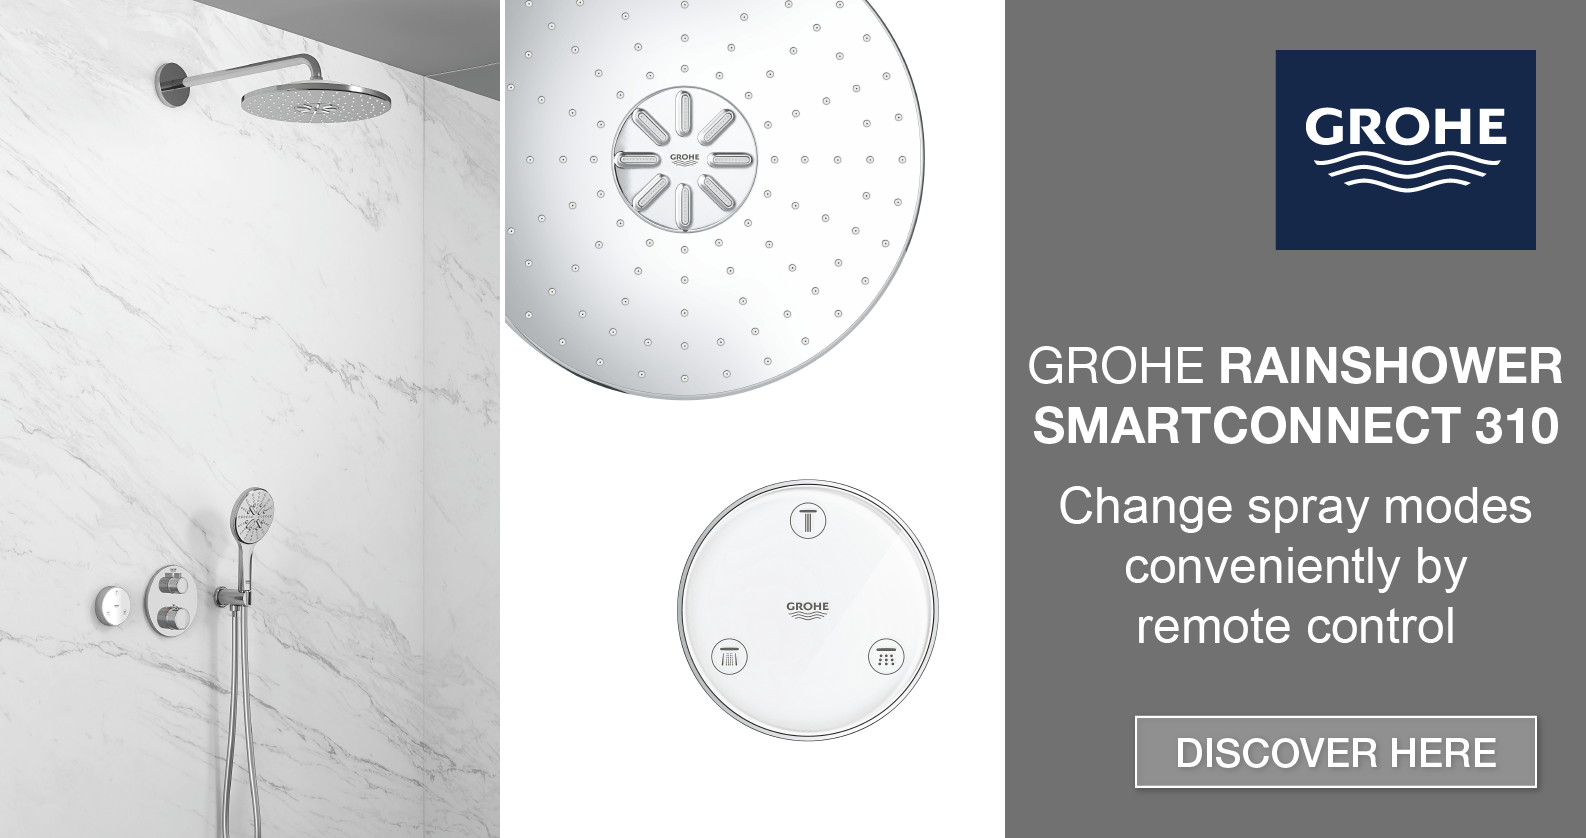 Discover GROHE Rainshower SmartConnect at xTWOstore